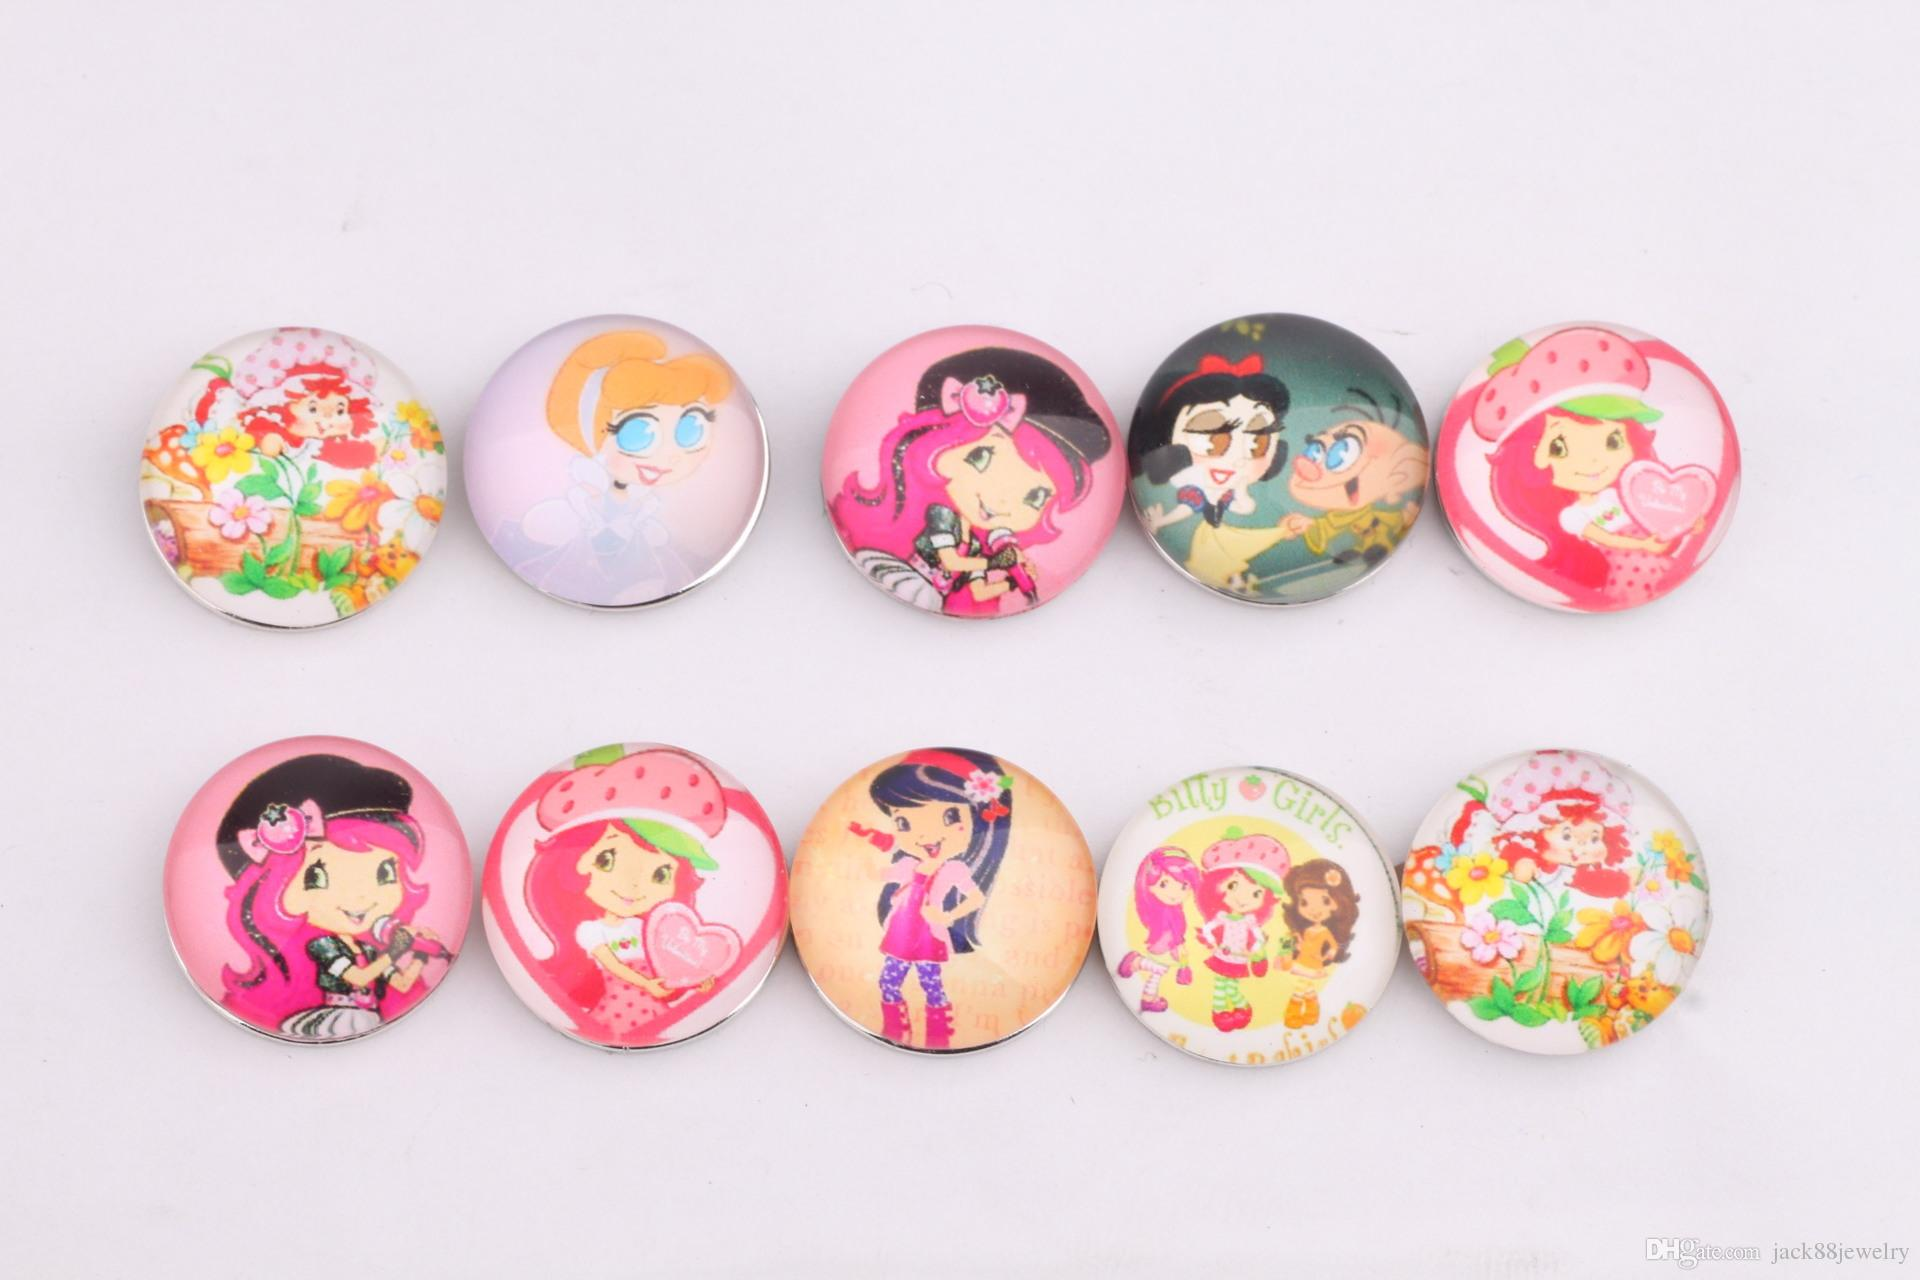 JACK88 Hot Sale Mix Styles 18mm Snaps Button Beauty Girl Glass Ginger Snap Button Fit Charm Bracelet Jewelry M585